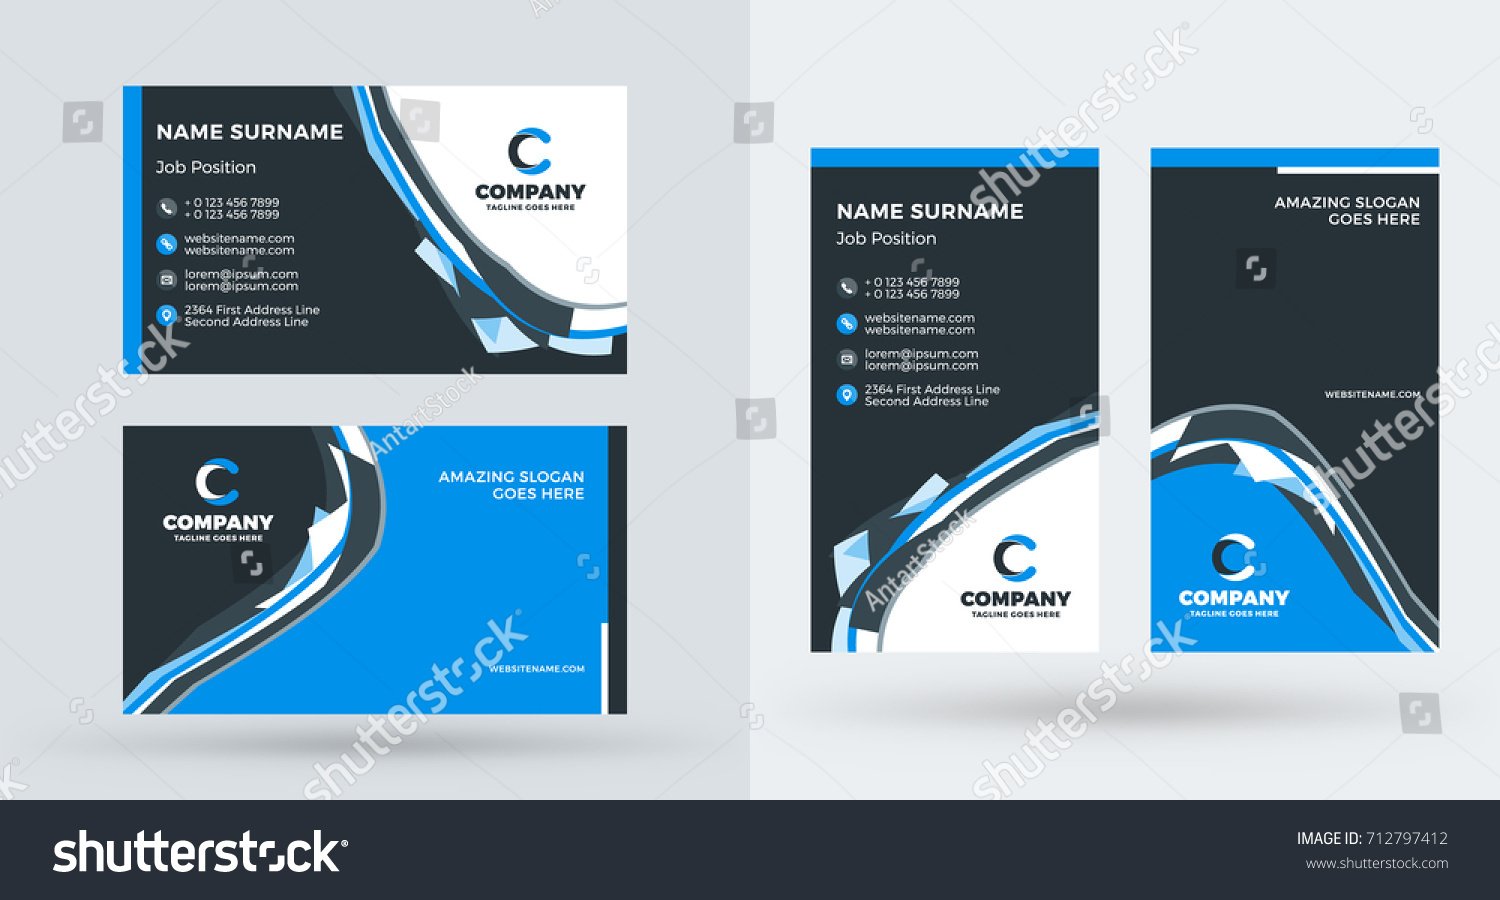 Doublesided creative business card template portrait stock vector double sided creative business card template portrait and landscape orientation horizontal and vertical cheaphphosting Images